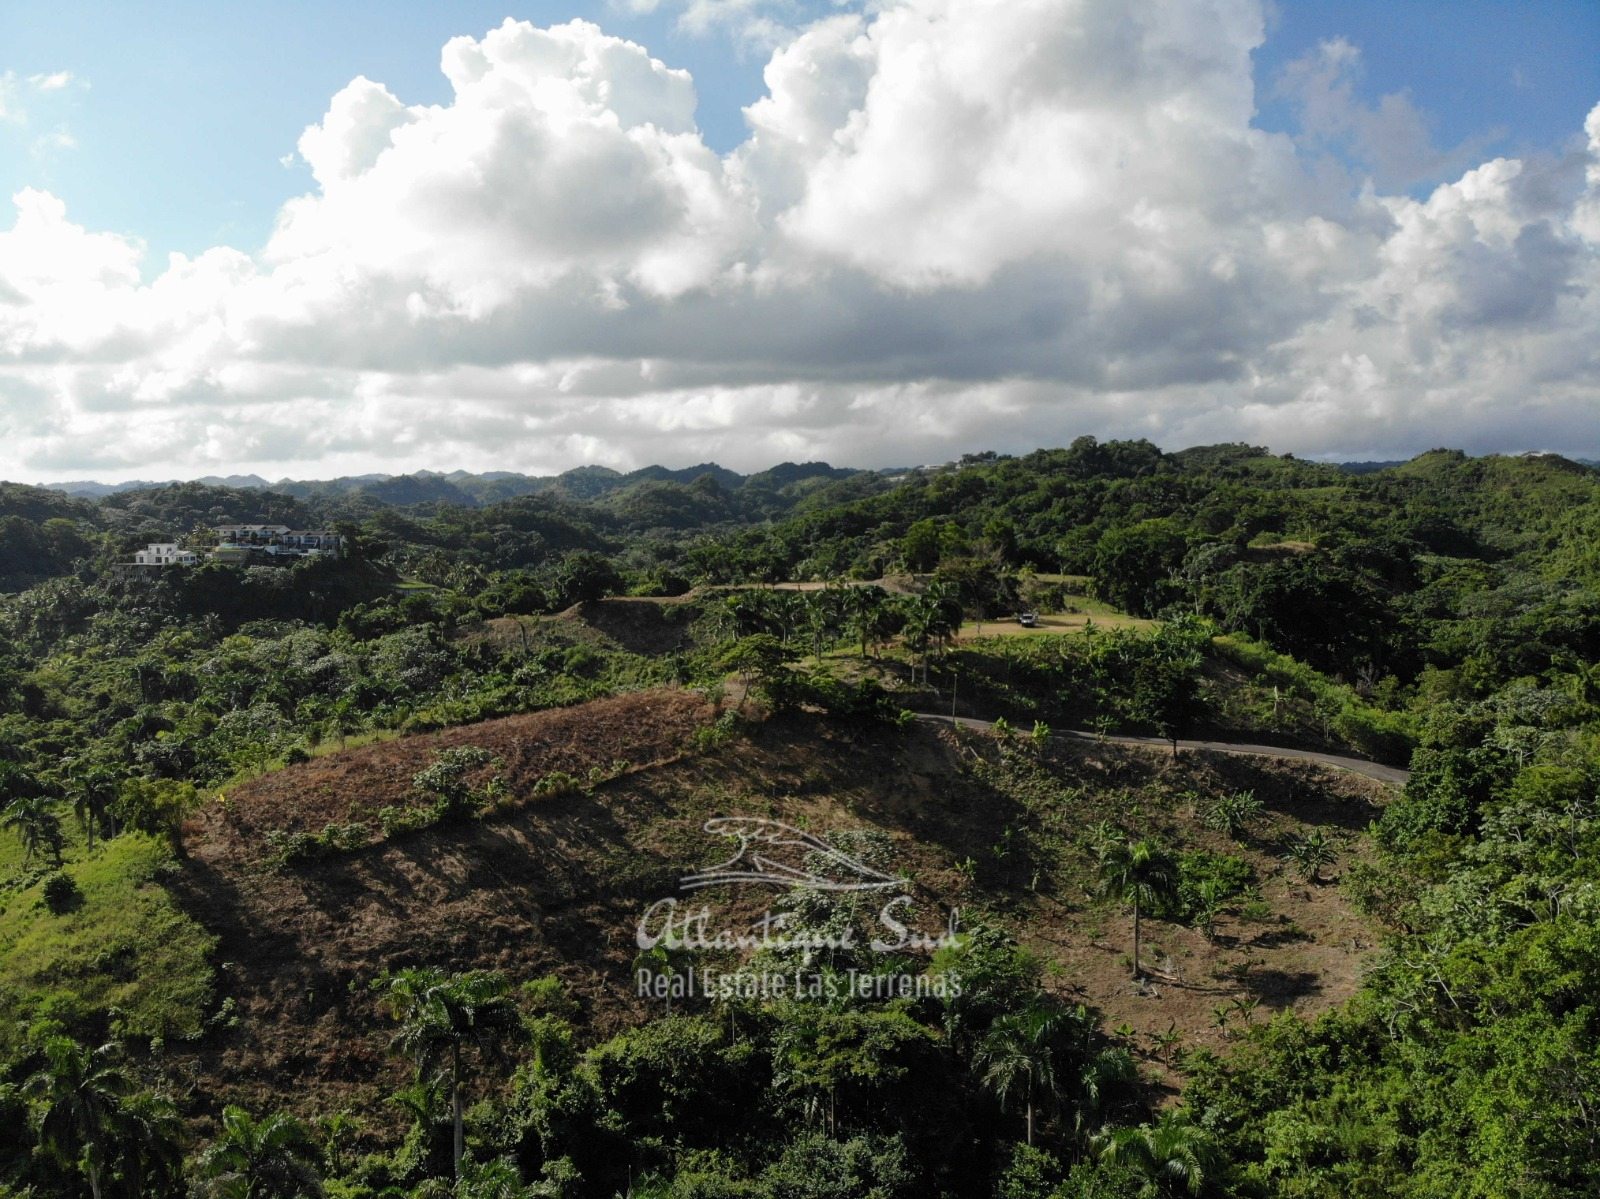 Land Lots for sale las terrenas samana19.jpeg